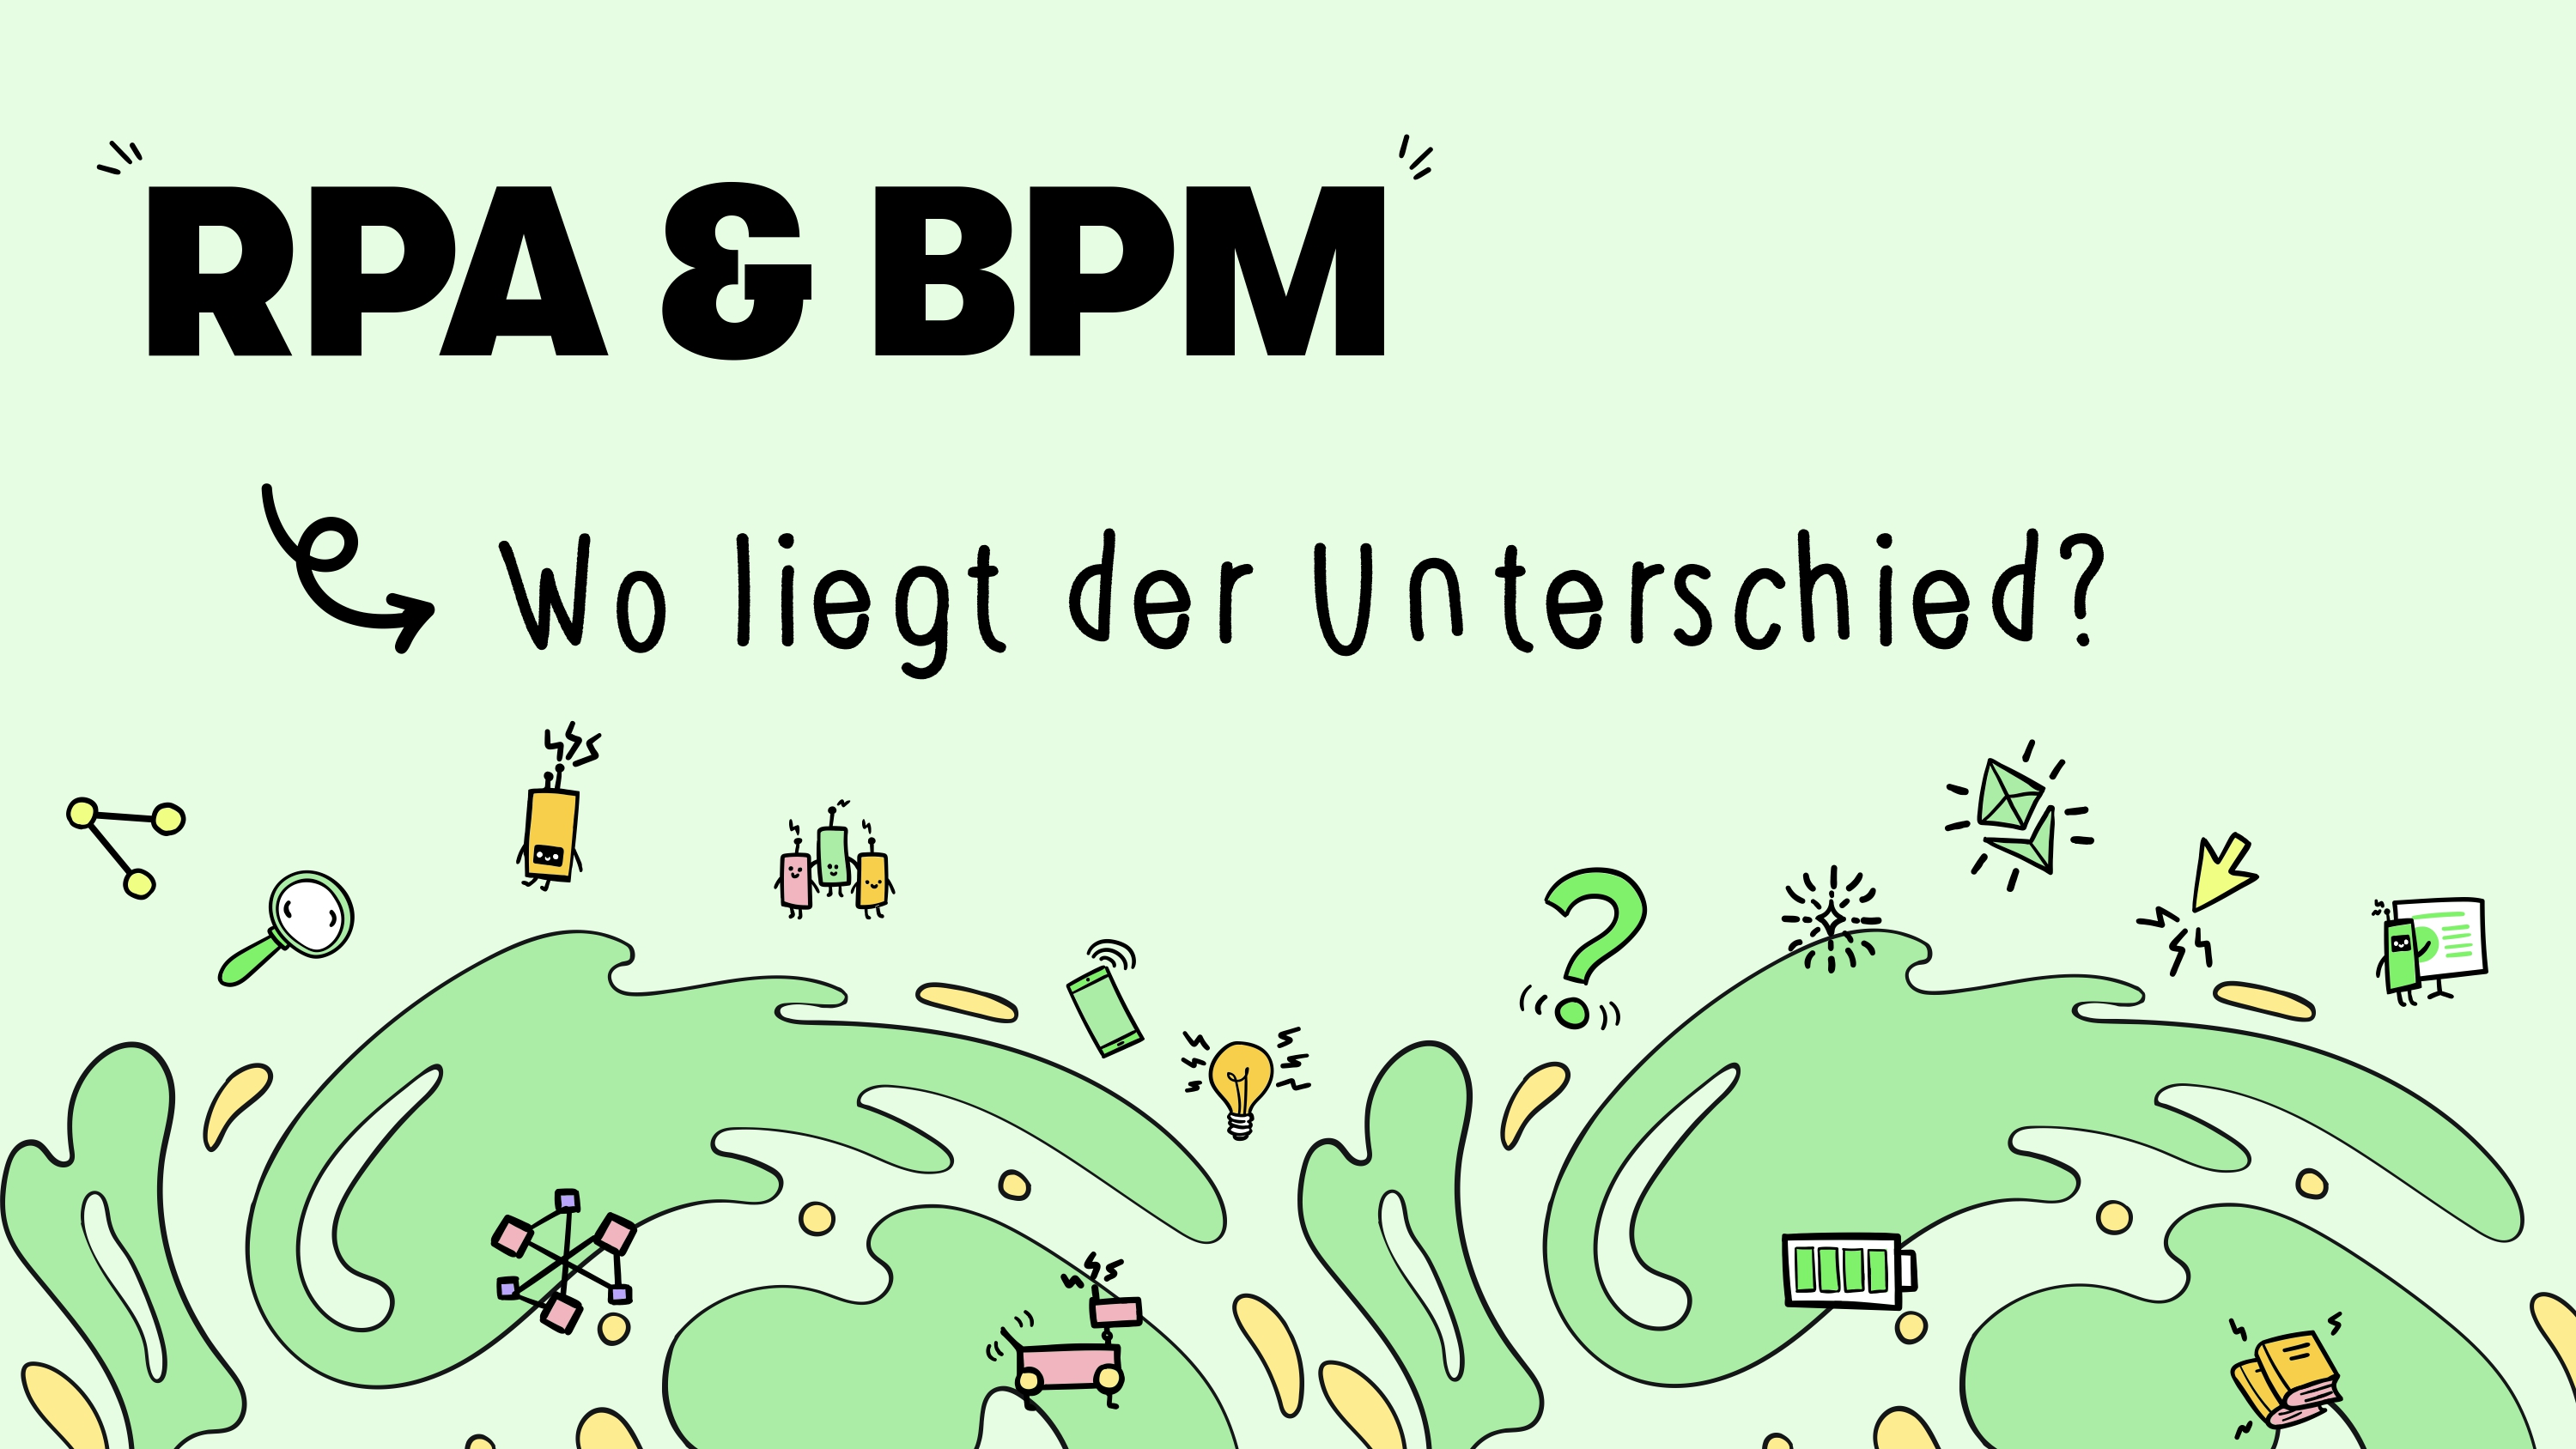 Robotic Process Automation (RPA) und Business Process Management (BPM): Wo liegt der Unterschied?